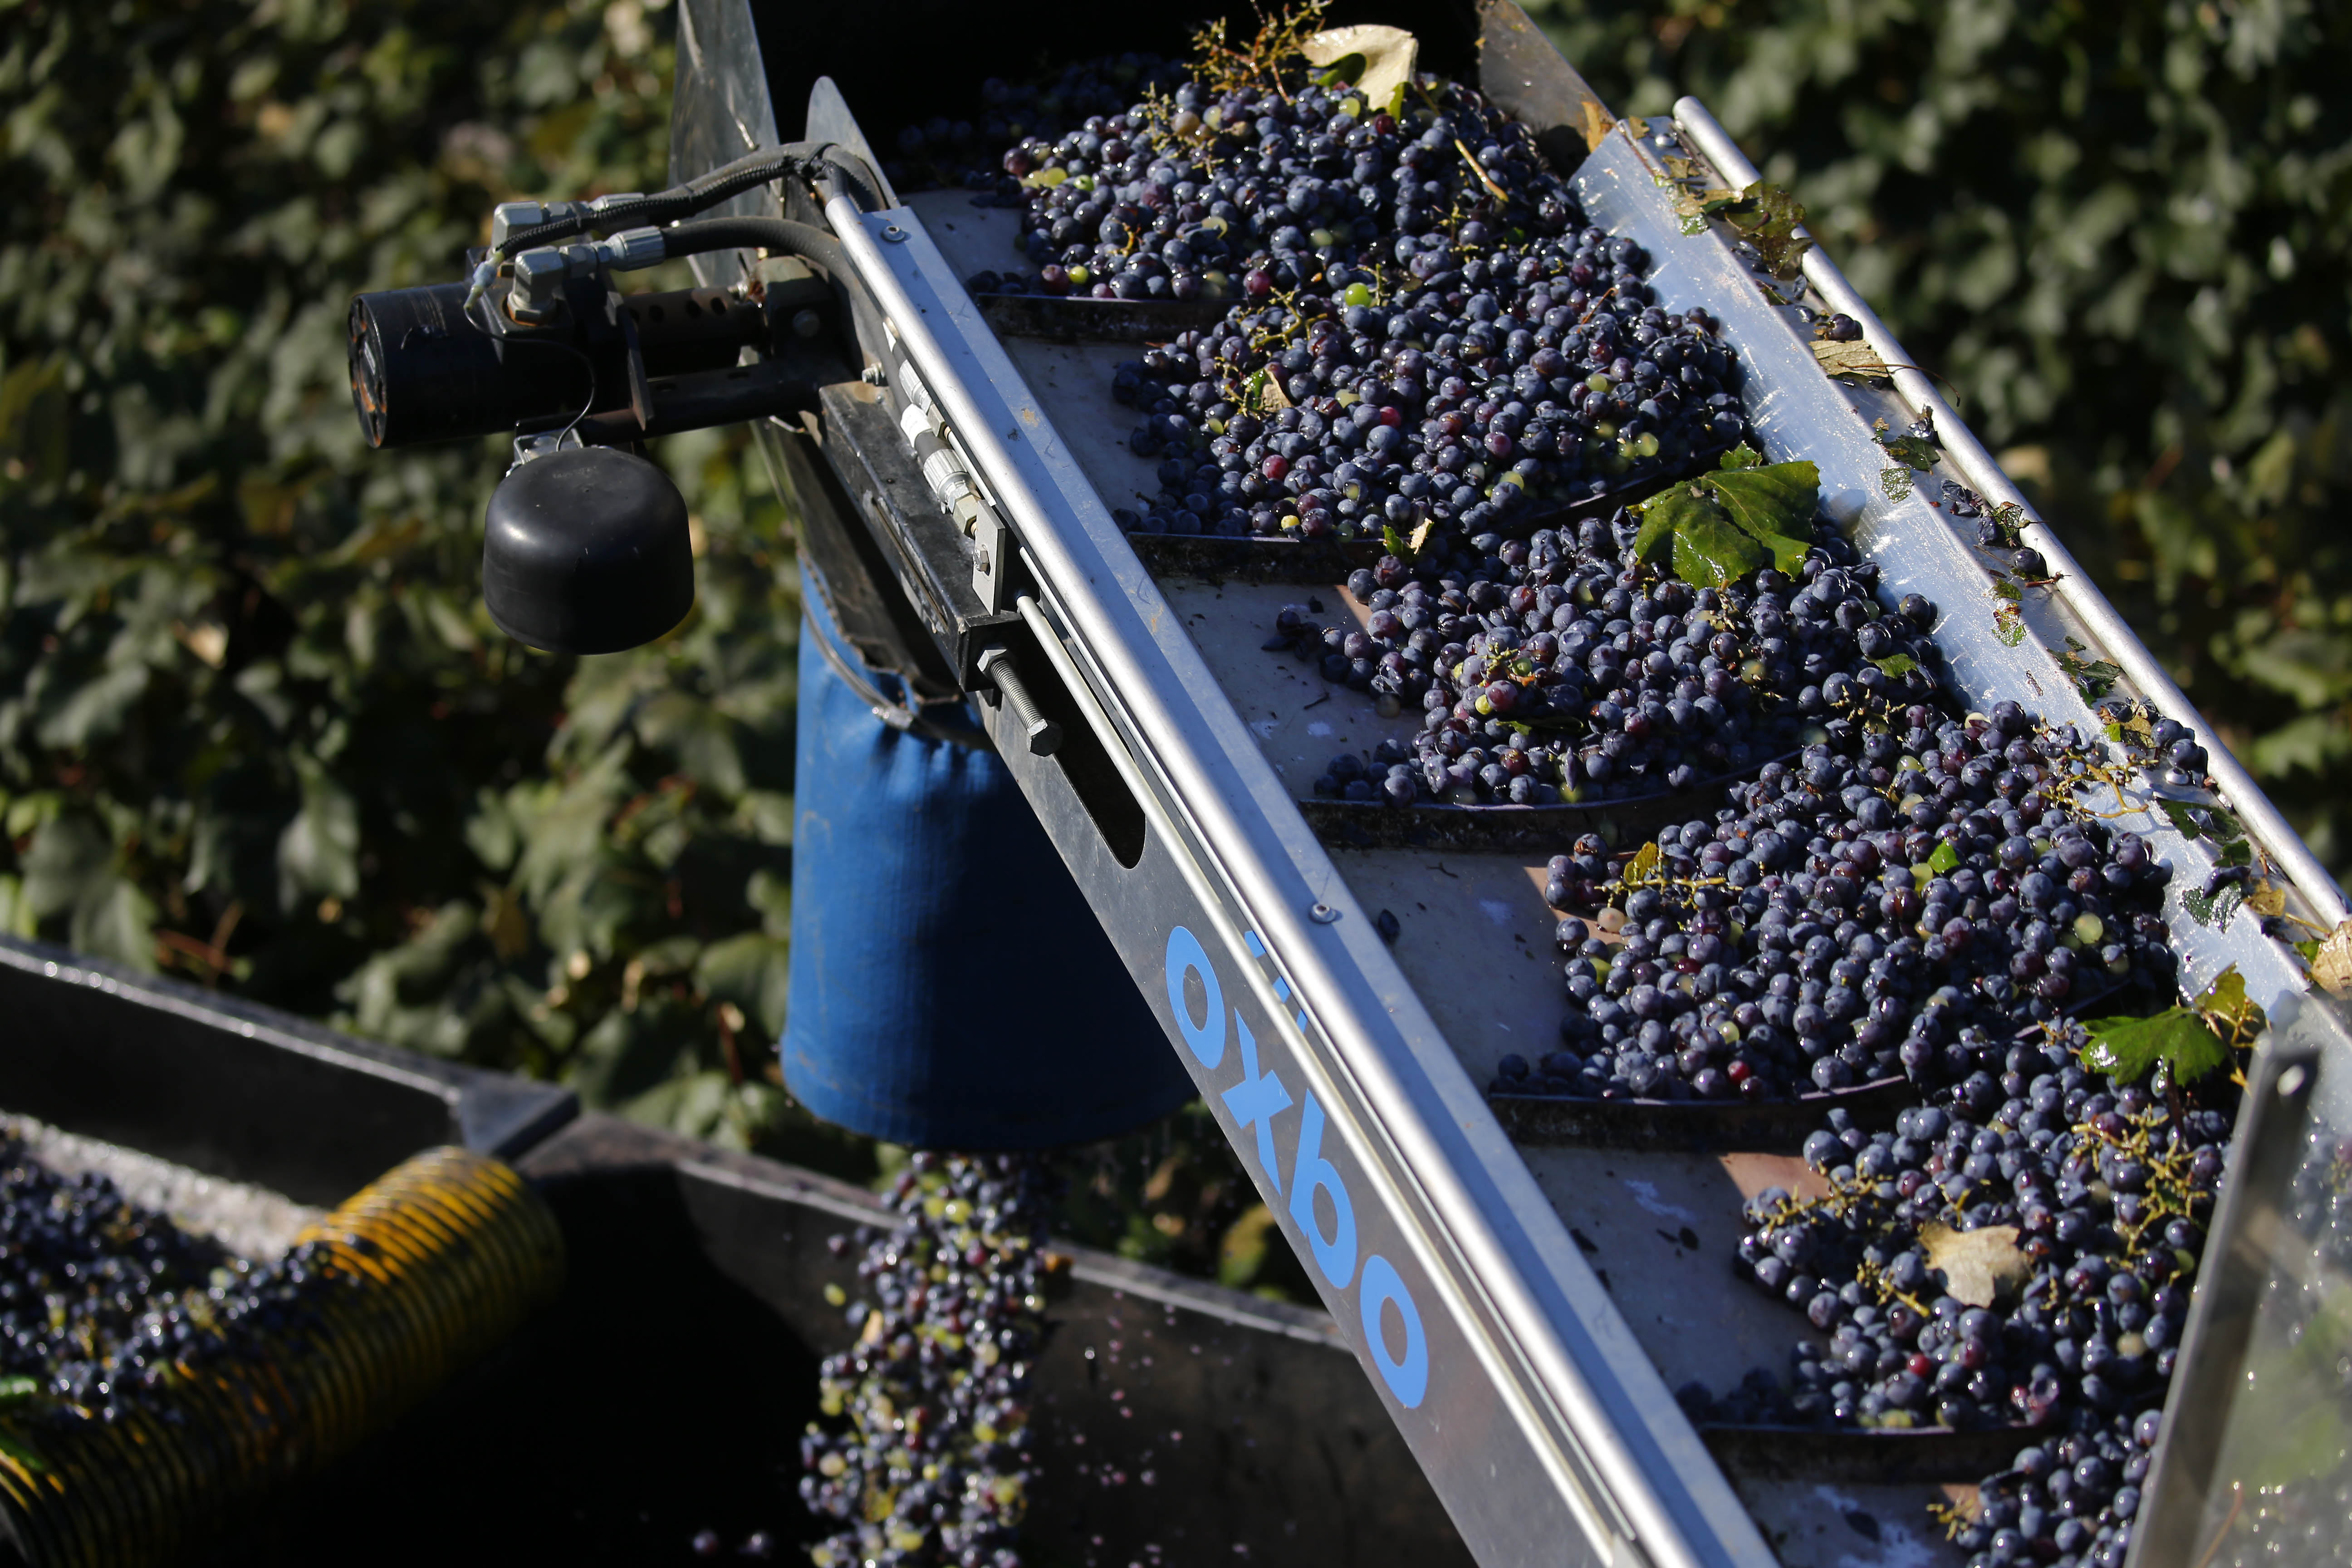 Concord grapes raise to pour into a collection bin from a grape harvester at Knight Vineyards in Ripley Tuesday, October 4, 2016. (Mark Mulville/The Buffalo News)